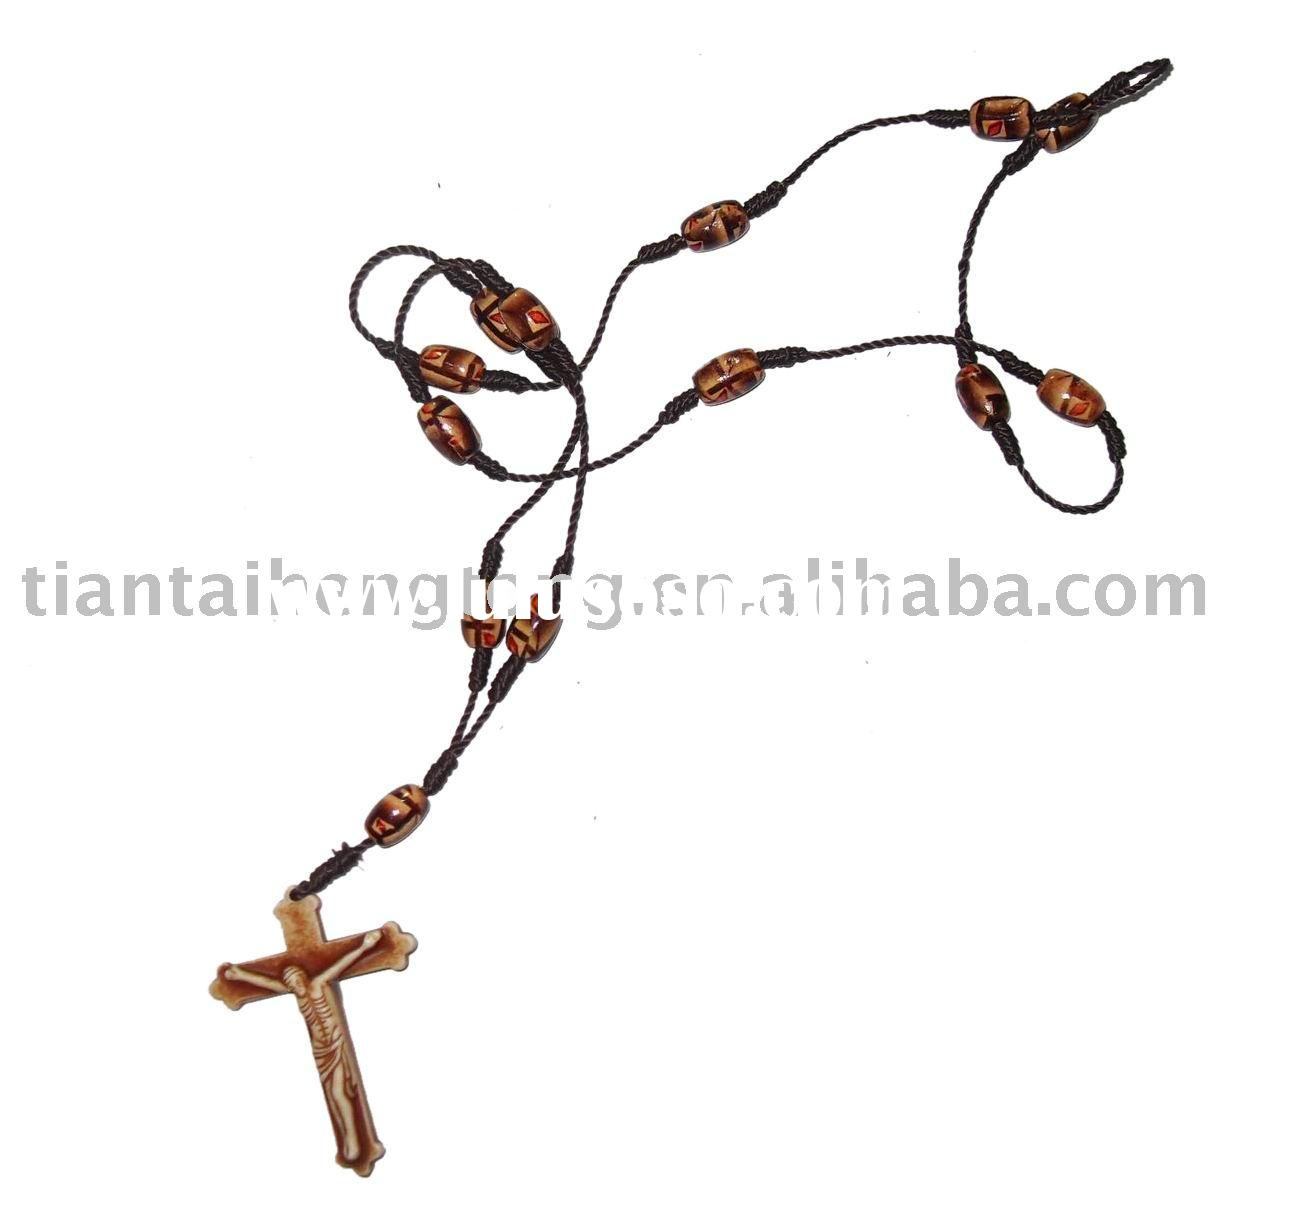 bead jewelry,fashion jewelry,string jewelry,costume jewelry,cross necklace,crucifix necklace,wooden